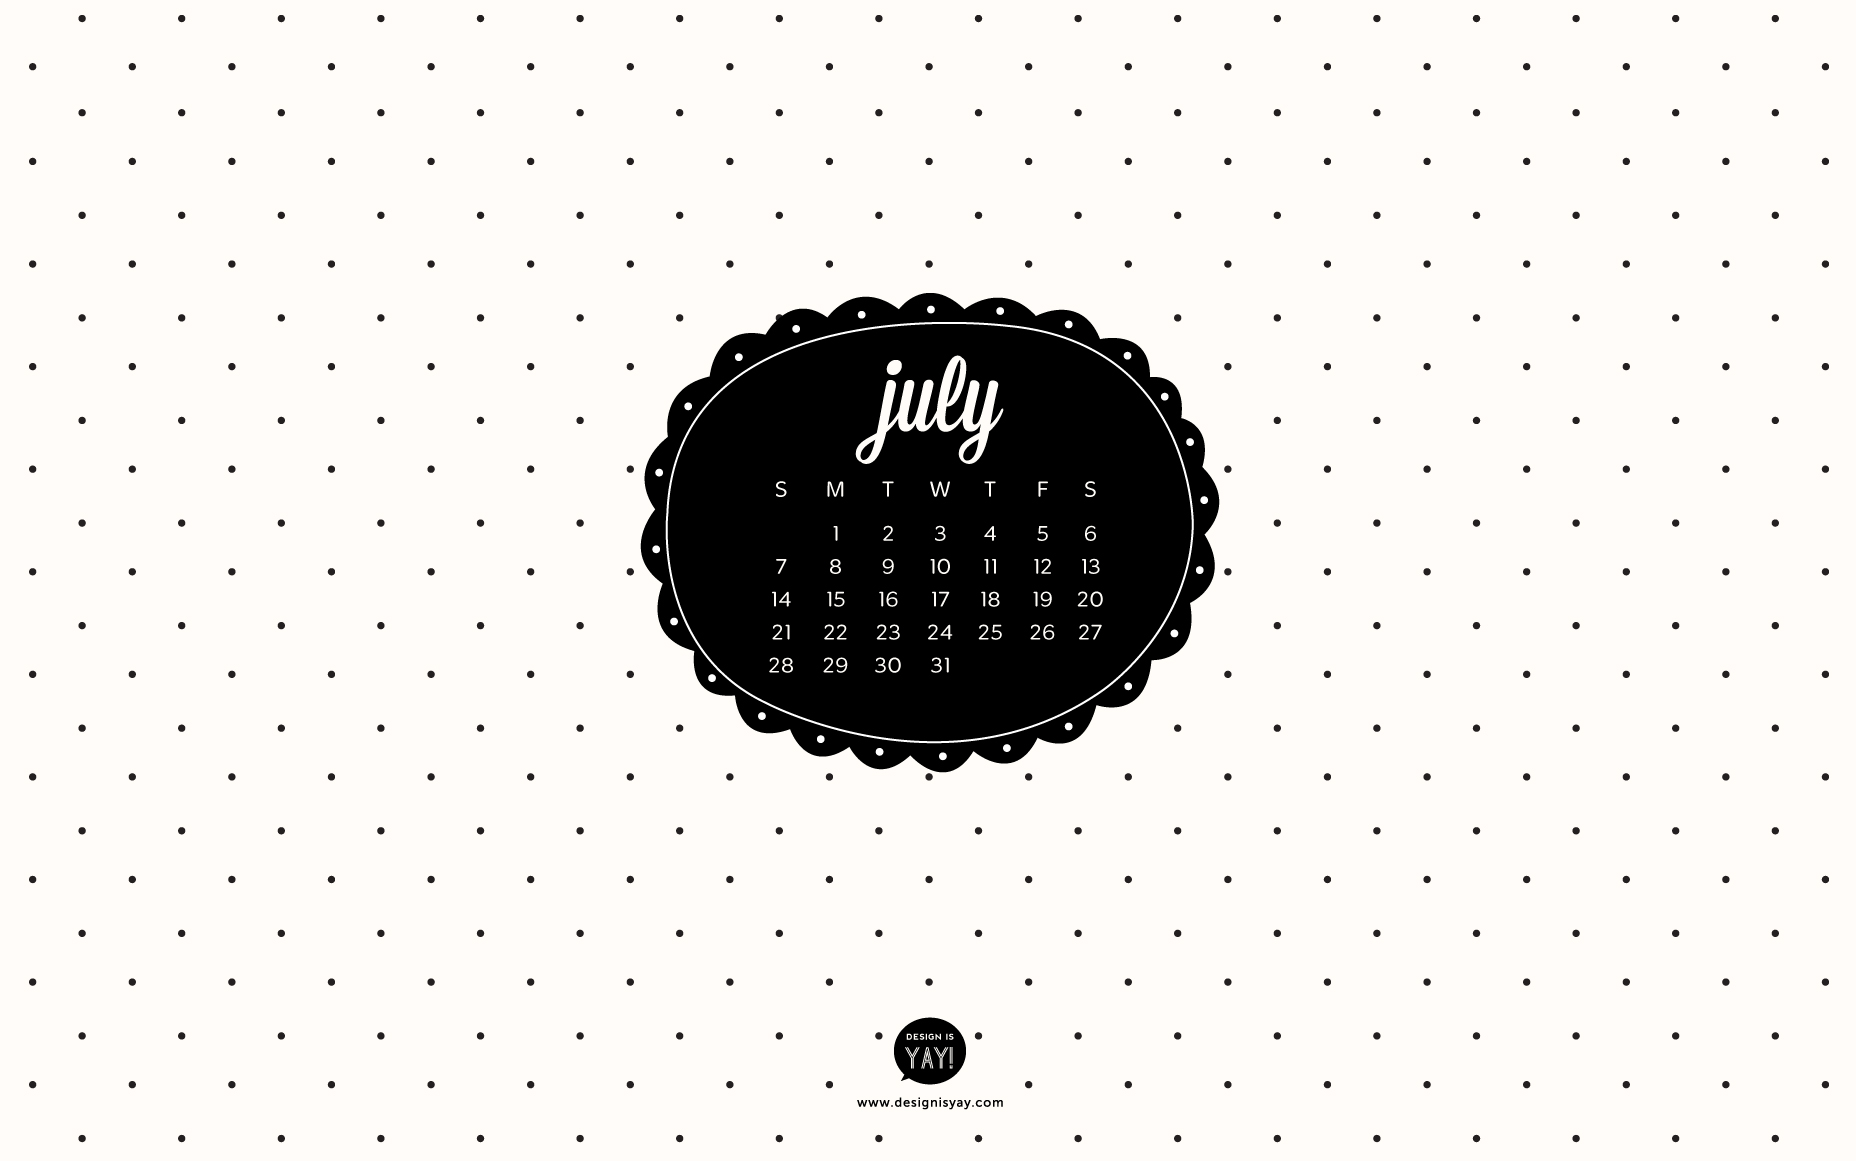 July-desktop-wallpaper-calendar-1856x1161